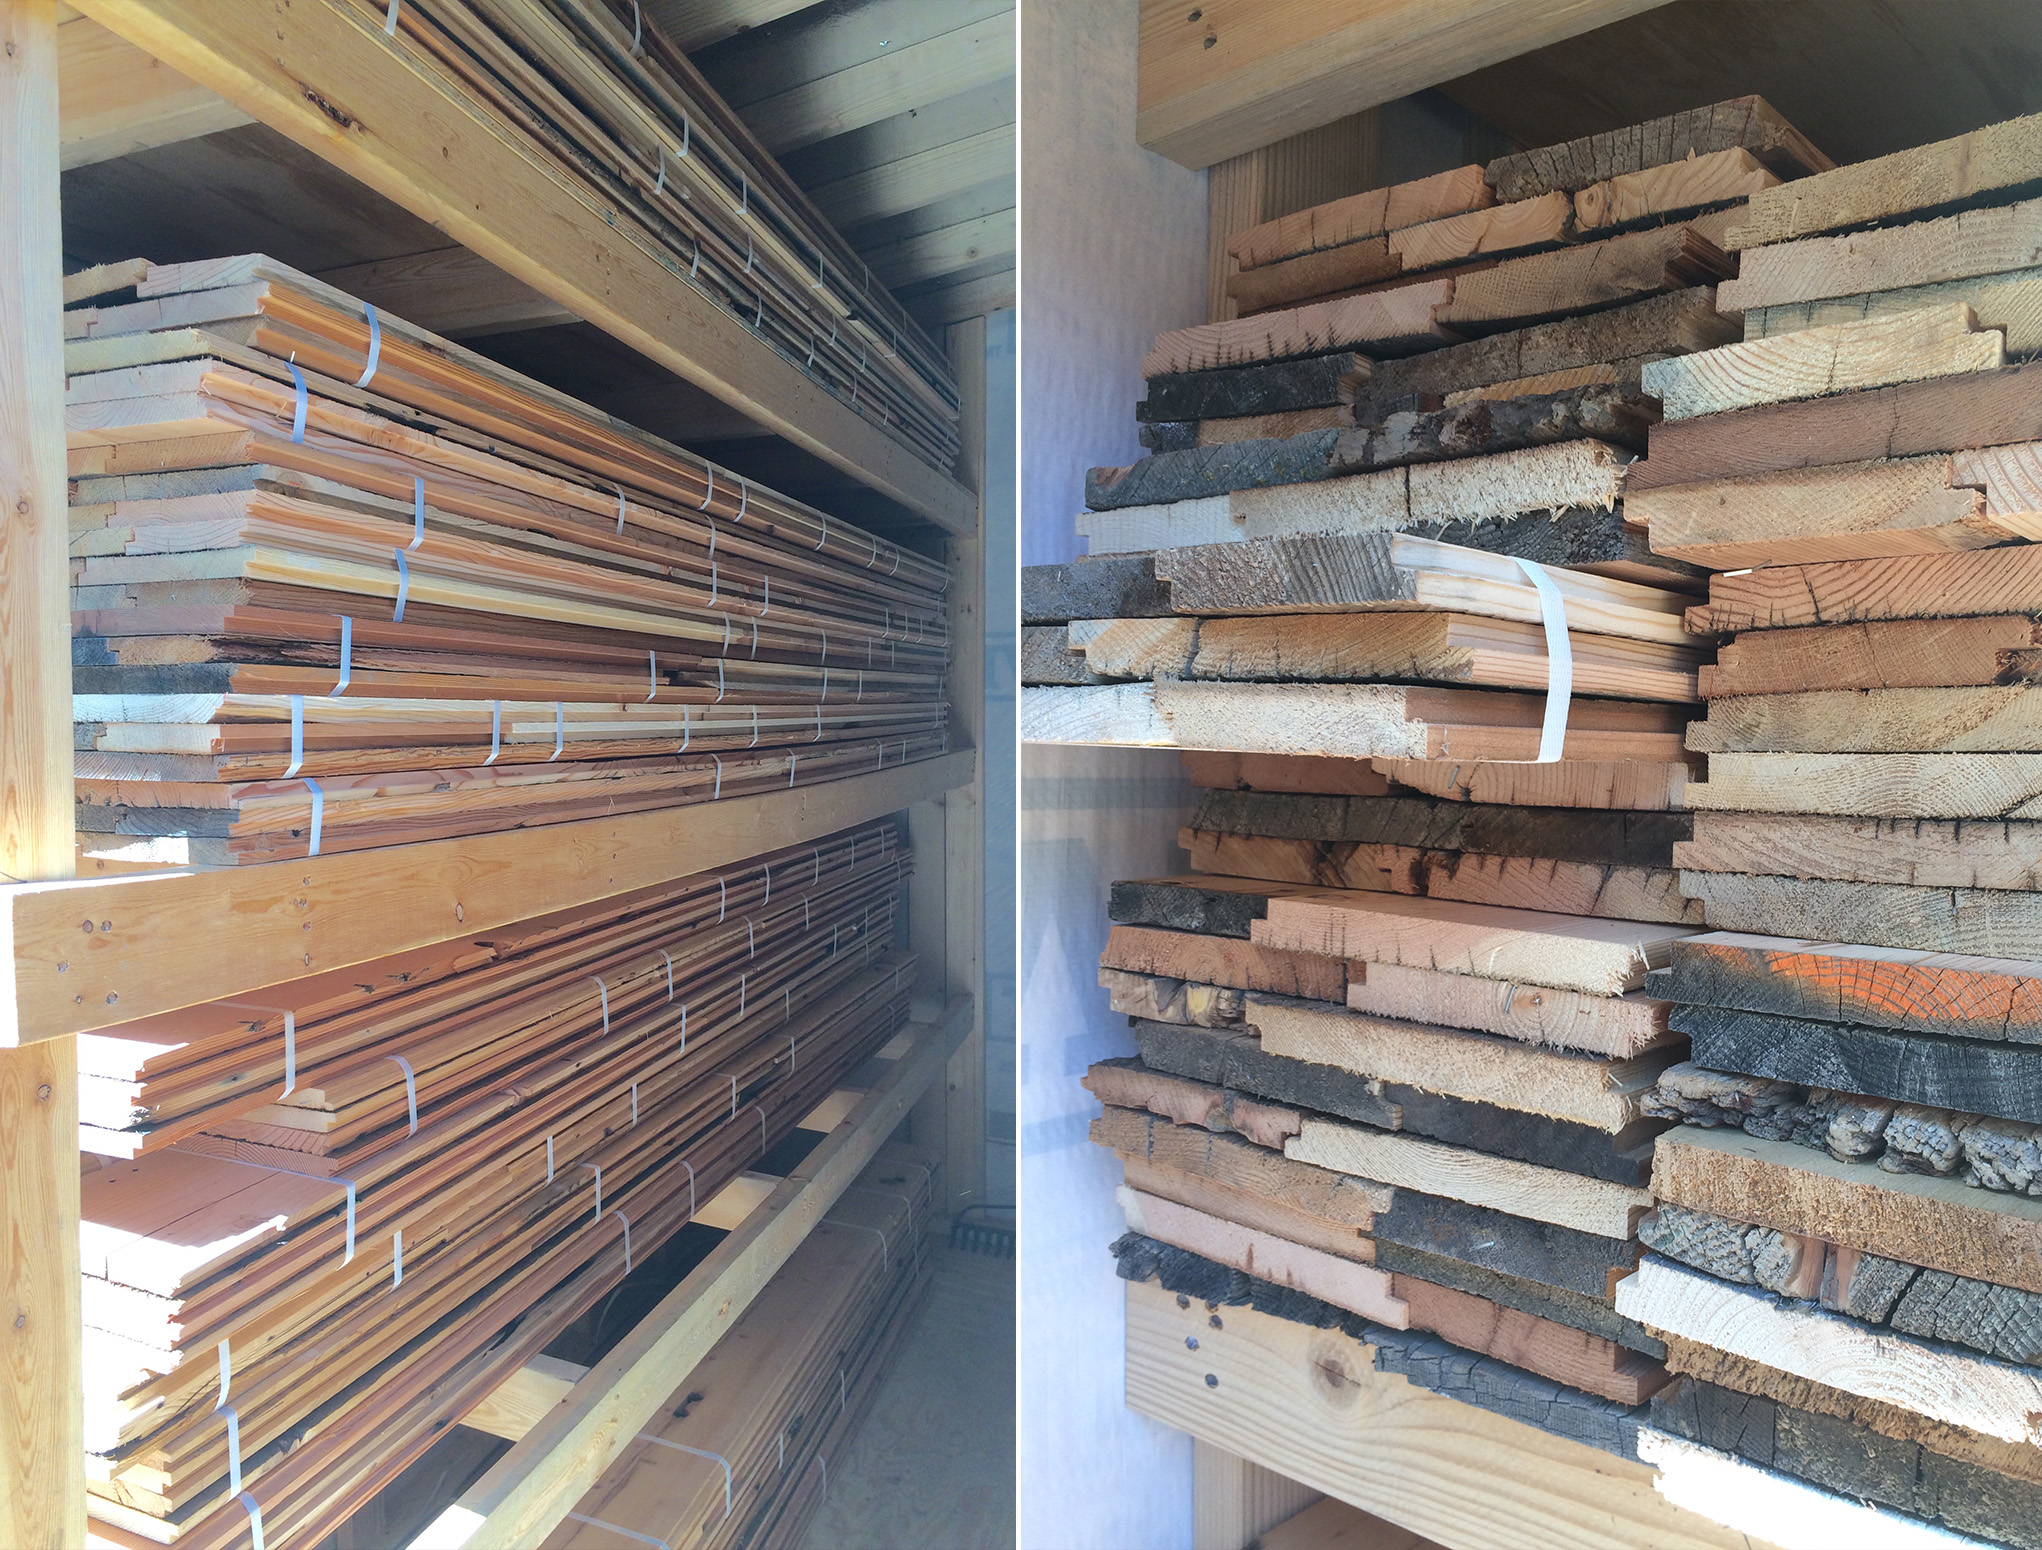 If Your Residential Or Commercial Project Calls For Shiplap Wood Walls Weve Got What You Are After